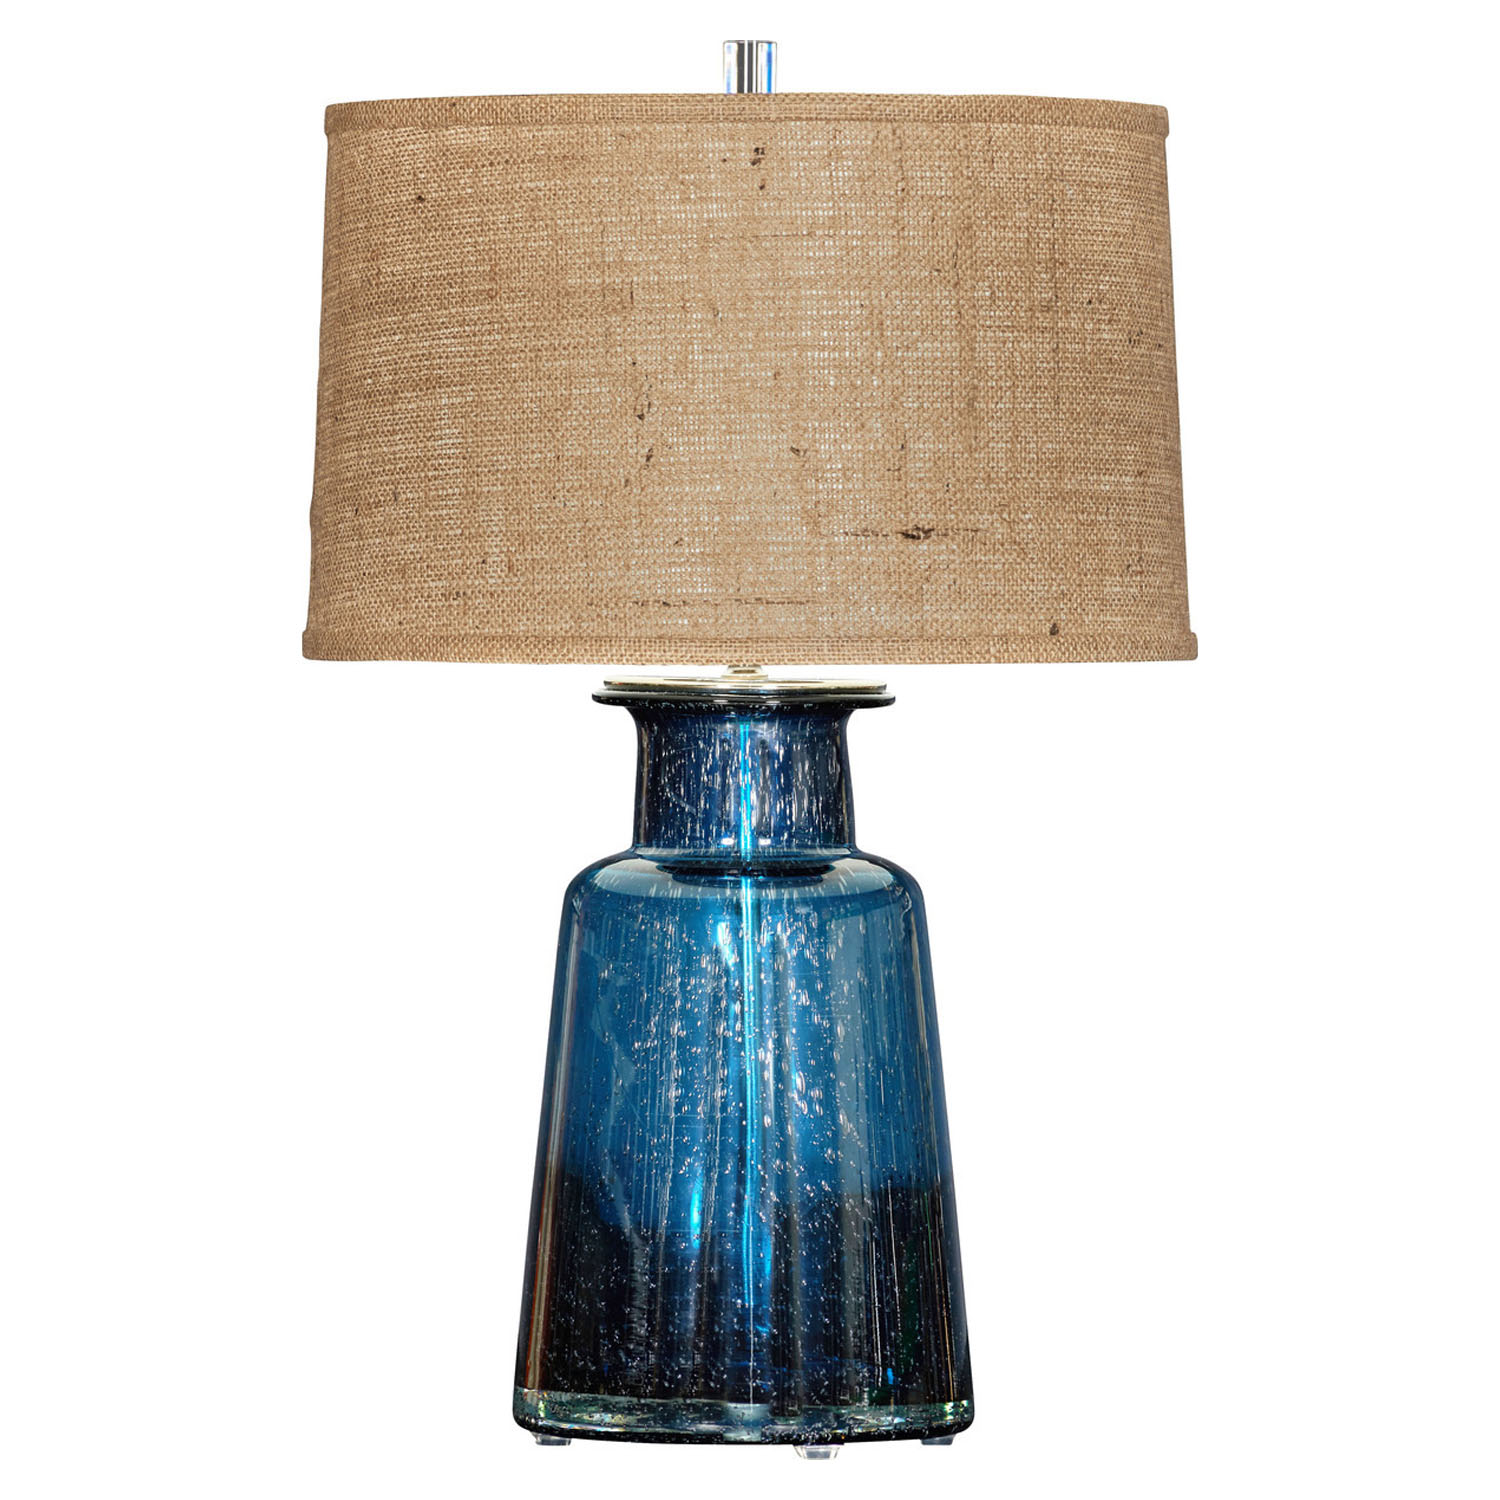 Captivating Laguna Blue Table Lamp